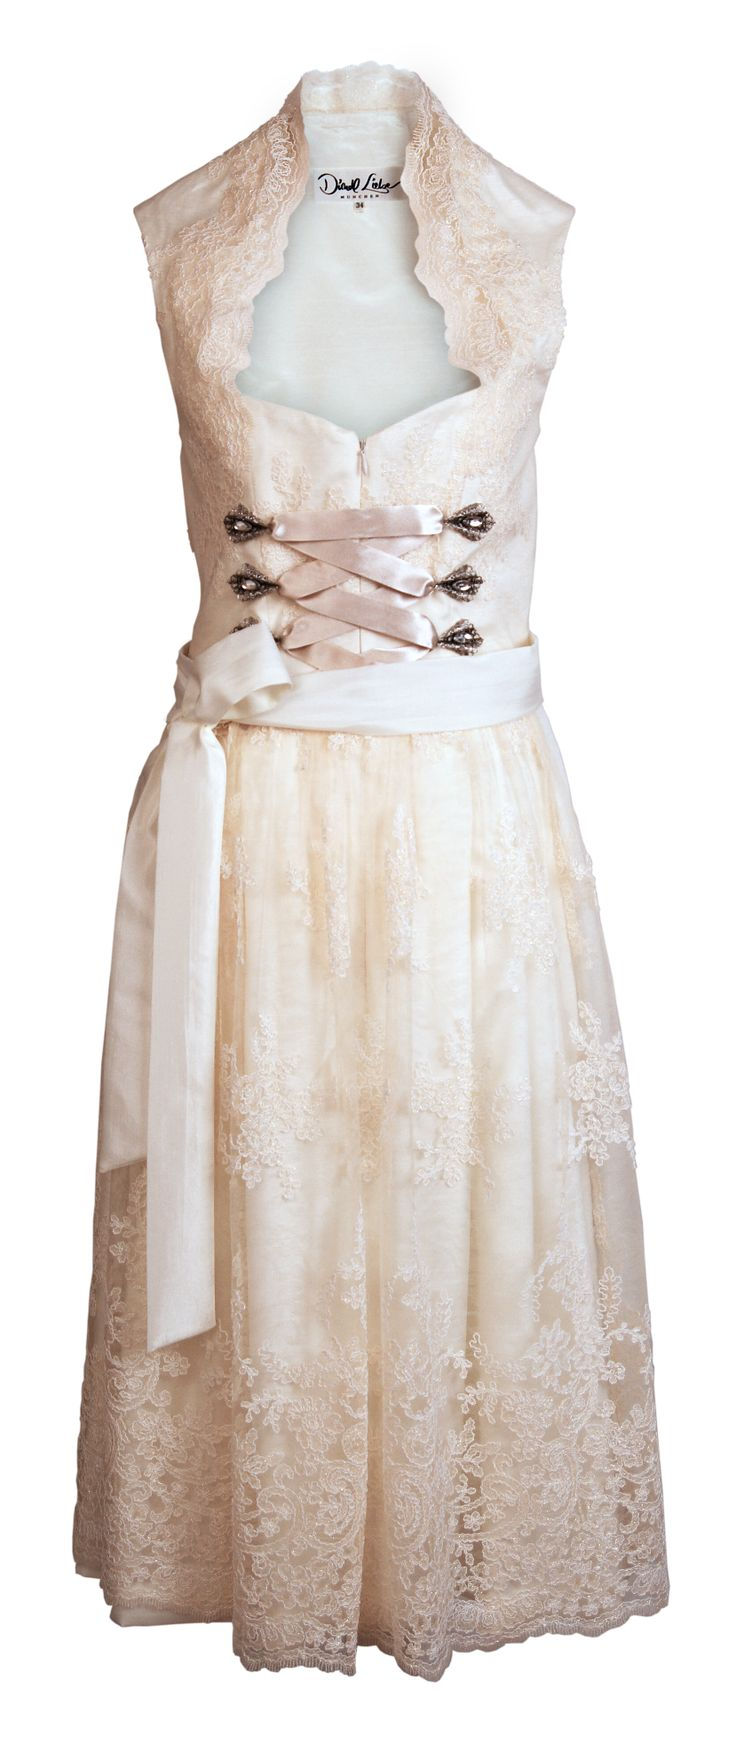 sweet and soft. perfect for weddings. Dirndl Liebe - München